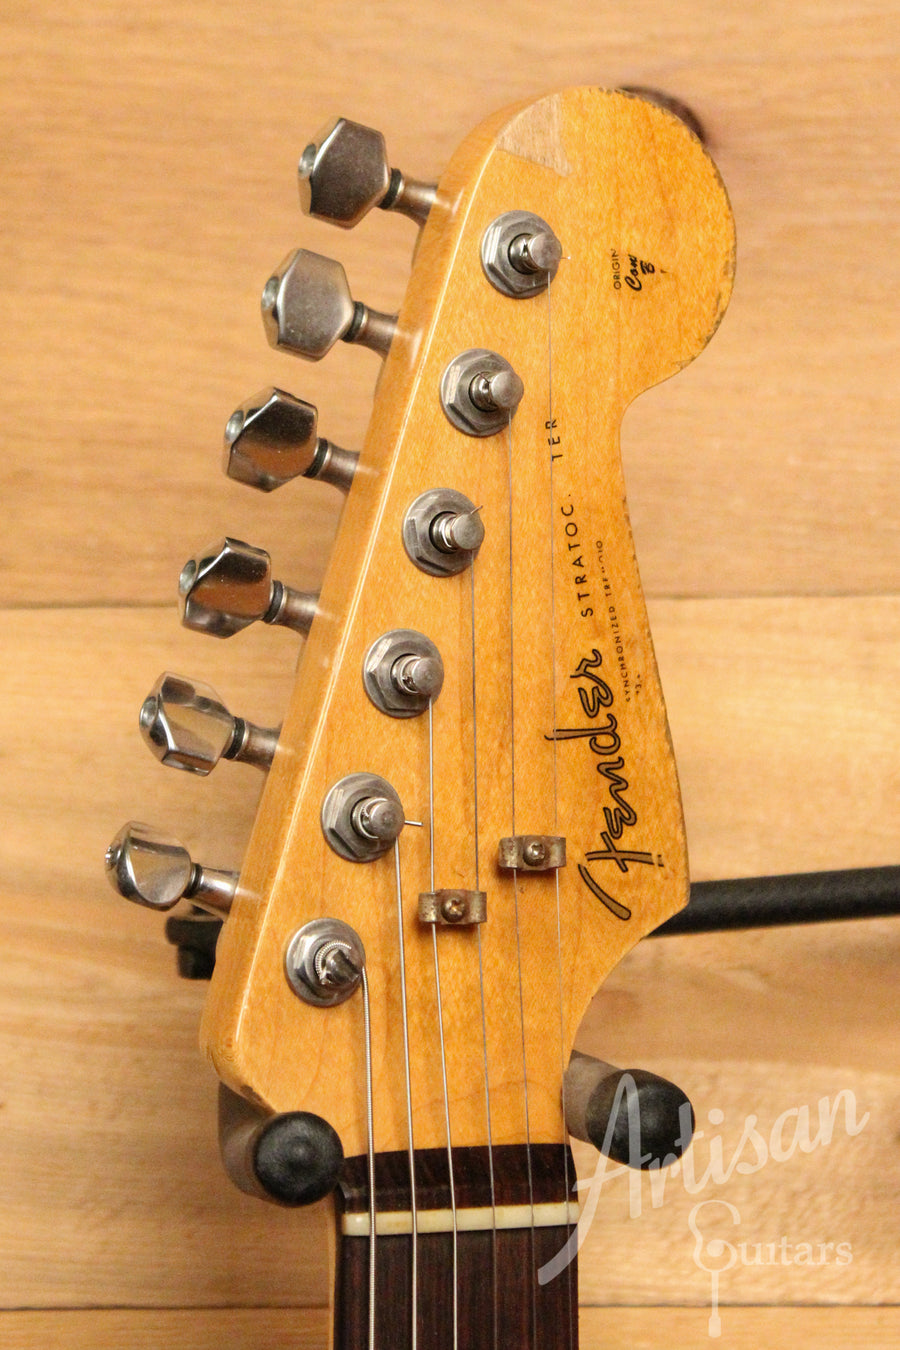 Fender Custom Shop Rory Gallagher Signature Stratocaster Heavy Relic 3 Color Sunburst Finish Pre-Owned 2007 ID-11689